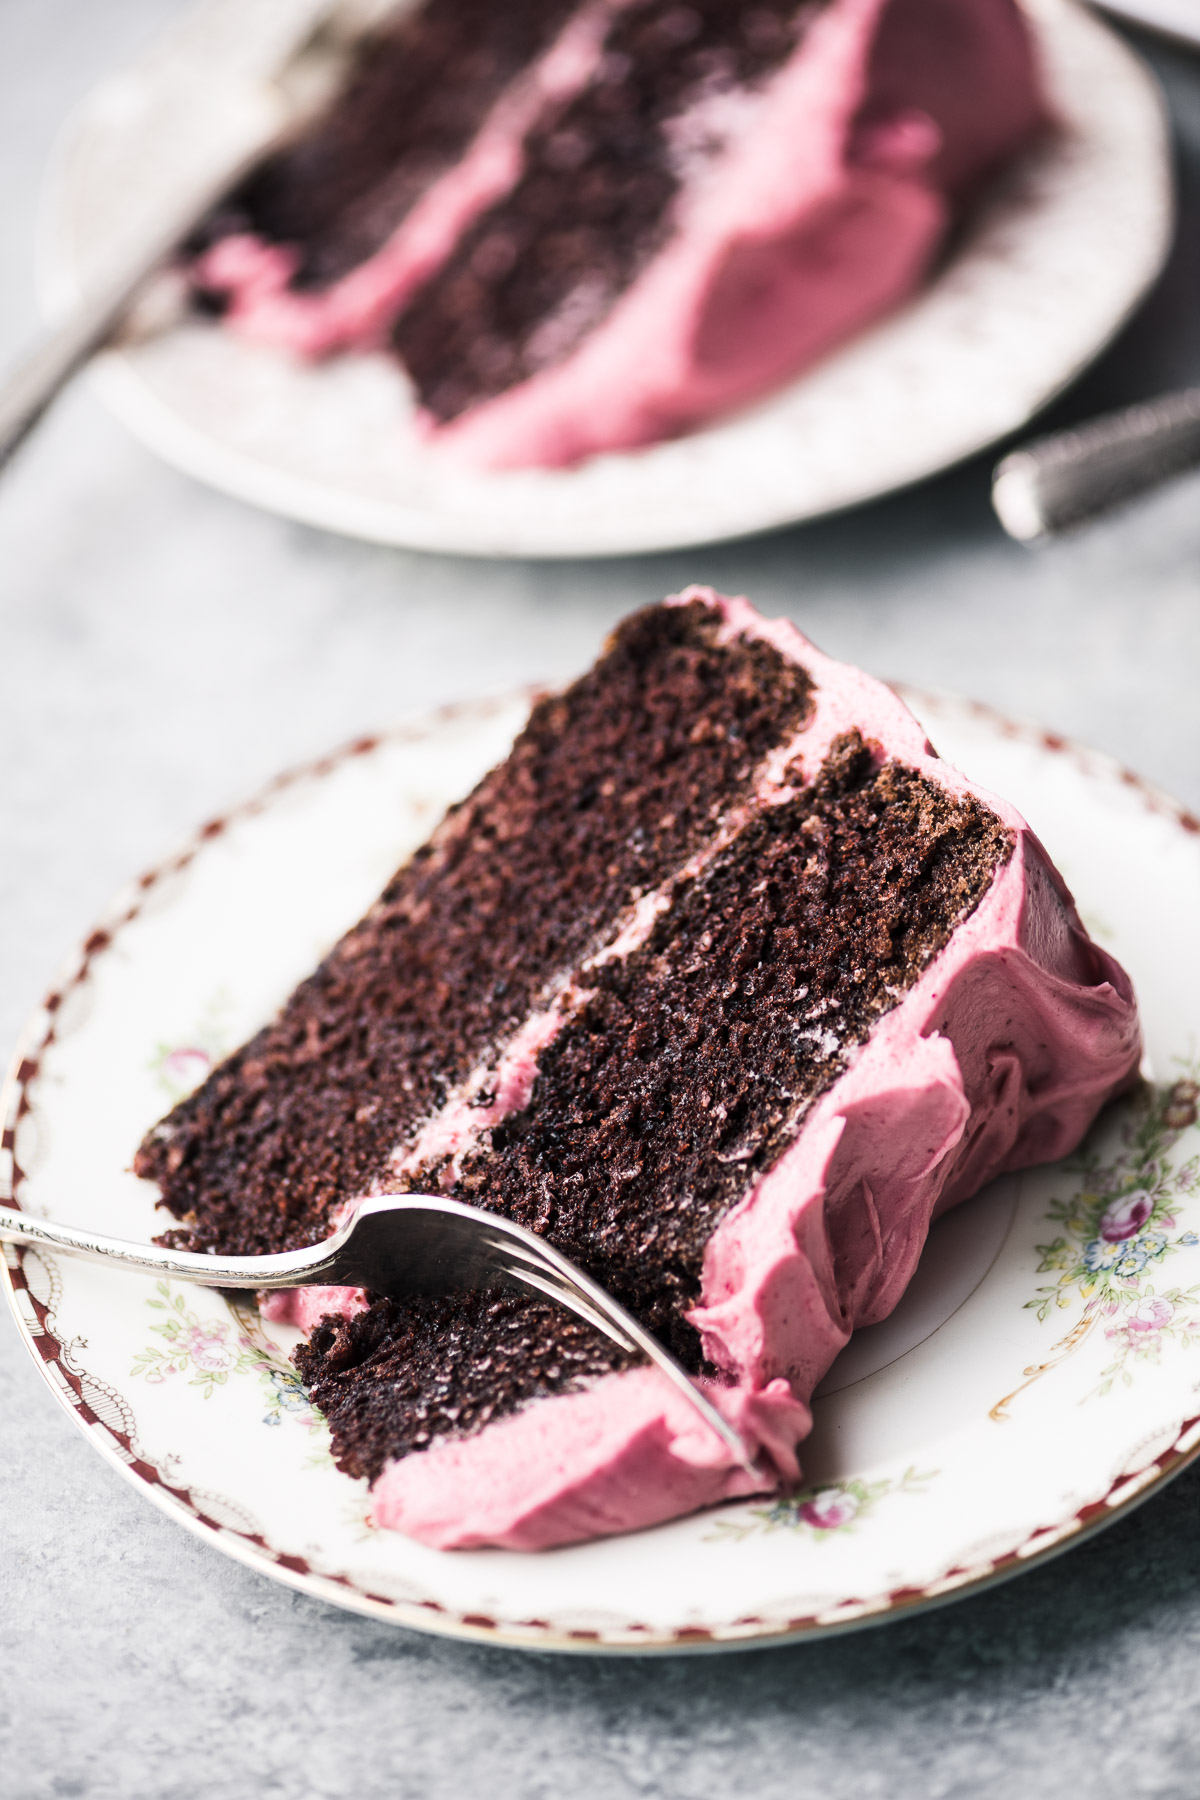 slices of chocolate layer cake with cranberry buttercream on small plates